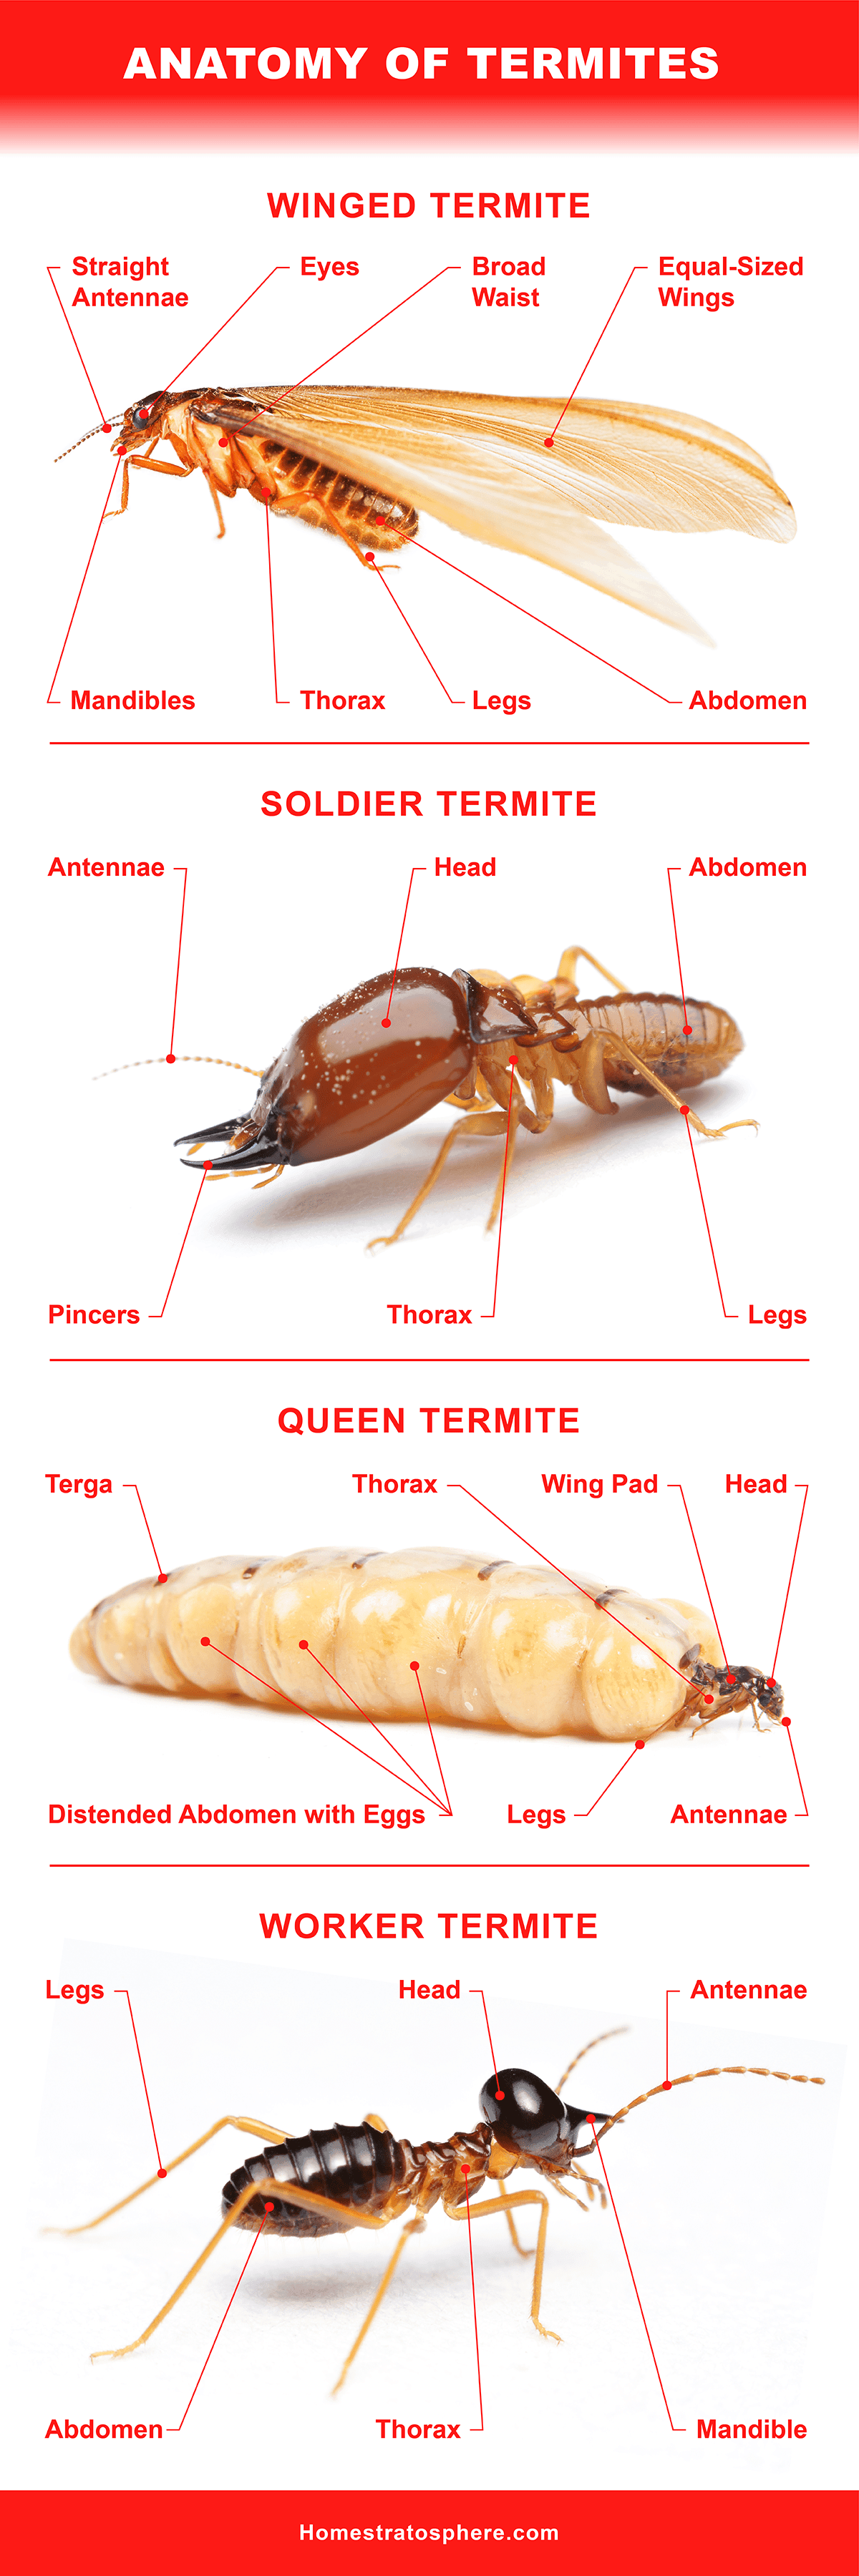 13 Different Types of Termites Eating Houses All Over the World